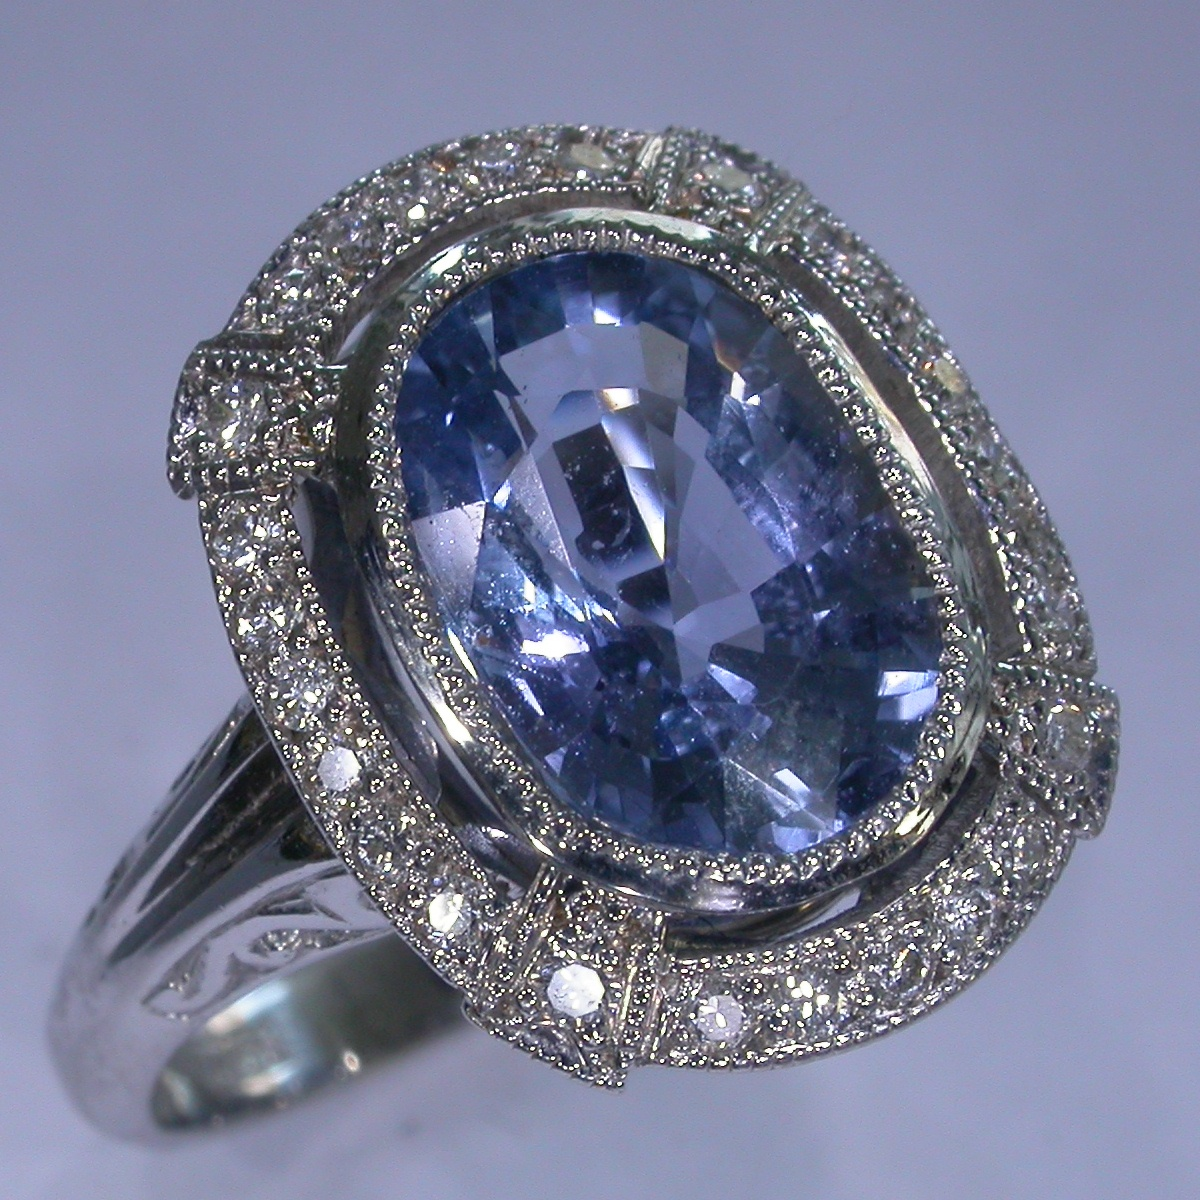 Melbourne Coloured Stone Rings - #7357